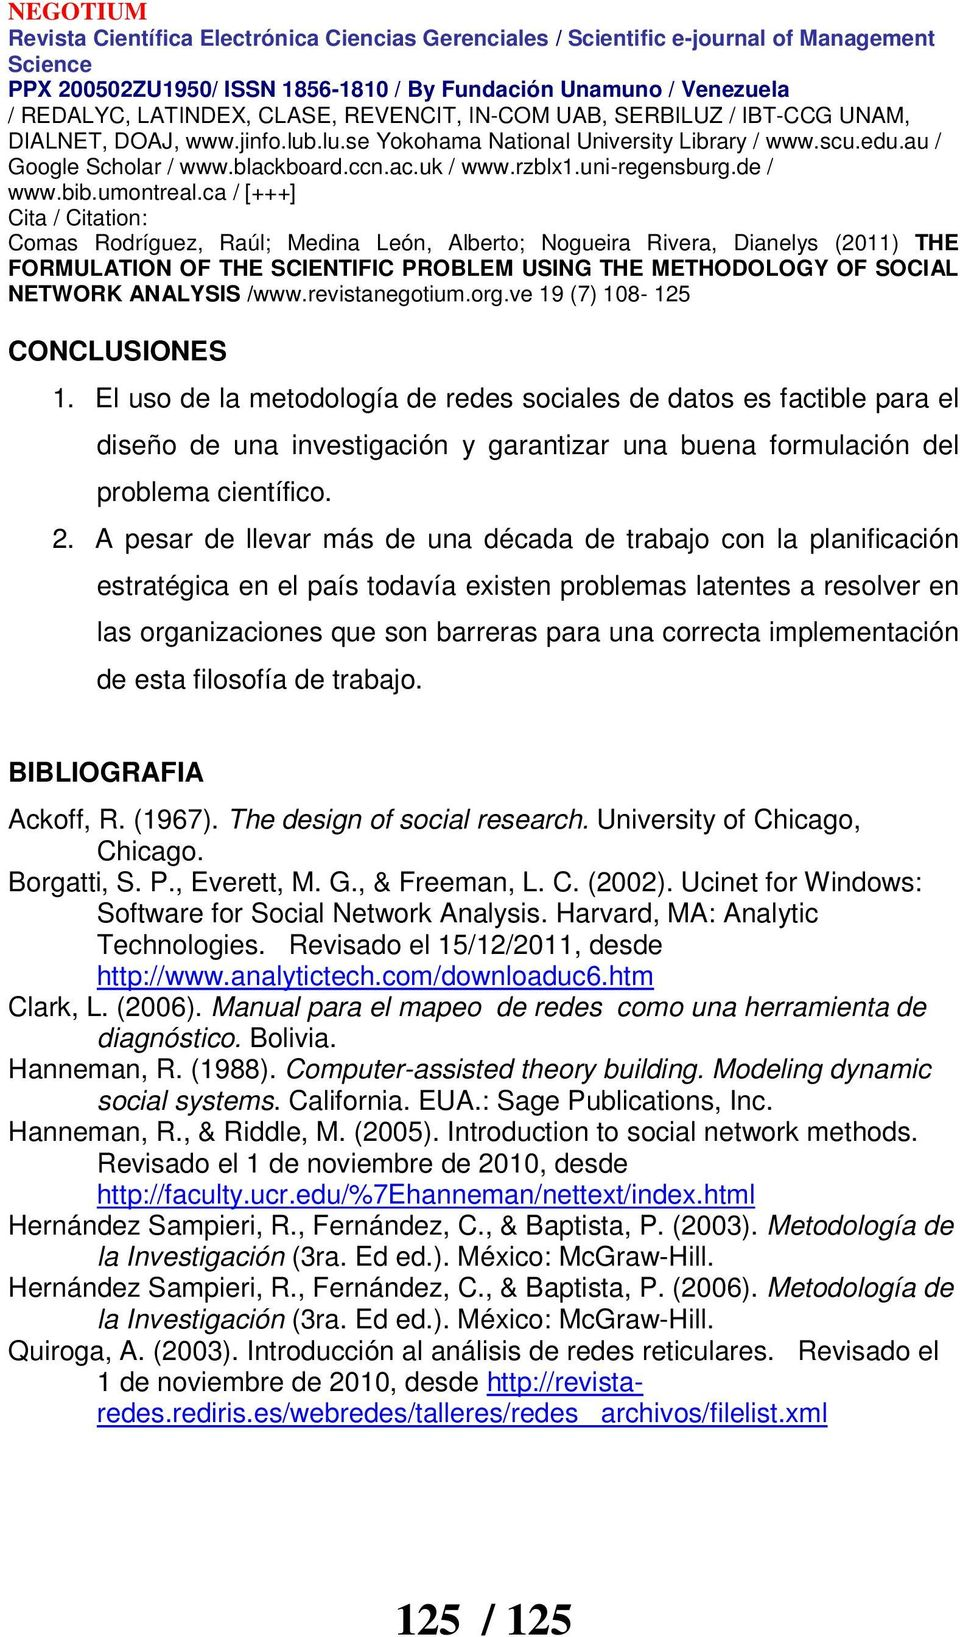 implementación de esta filosofía de trabajo. BIBLIOGRAFIA Ackoff, R. (1967). The design of social research. University of Chicago, Chicago. Borgatti, S. P., Everett, M. G., & Freeman, L. C. (2002).